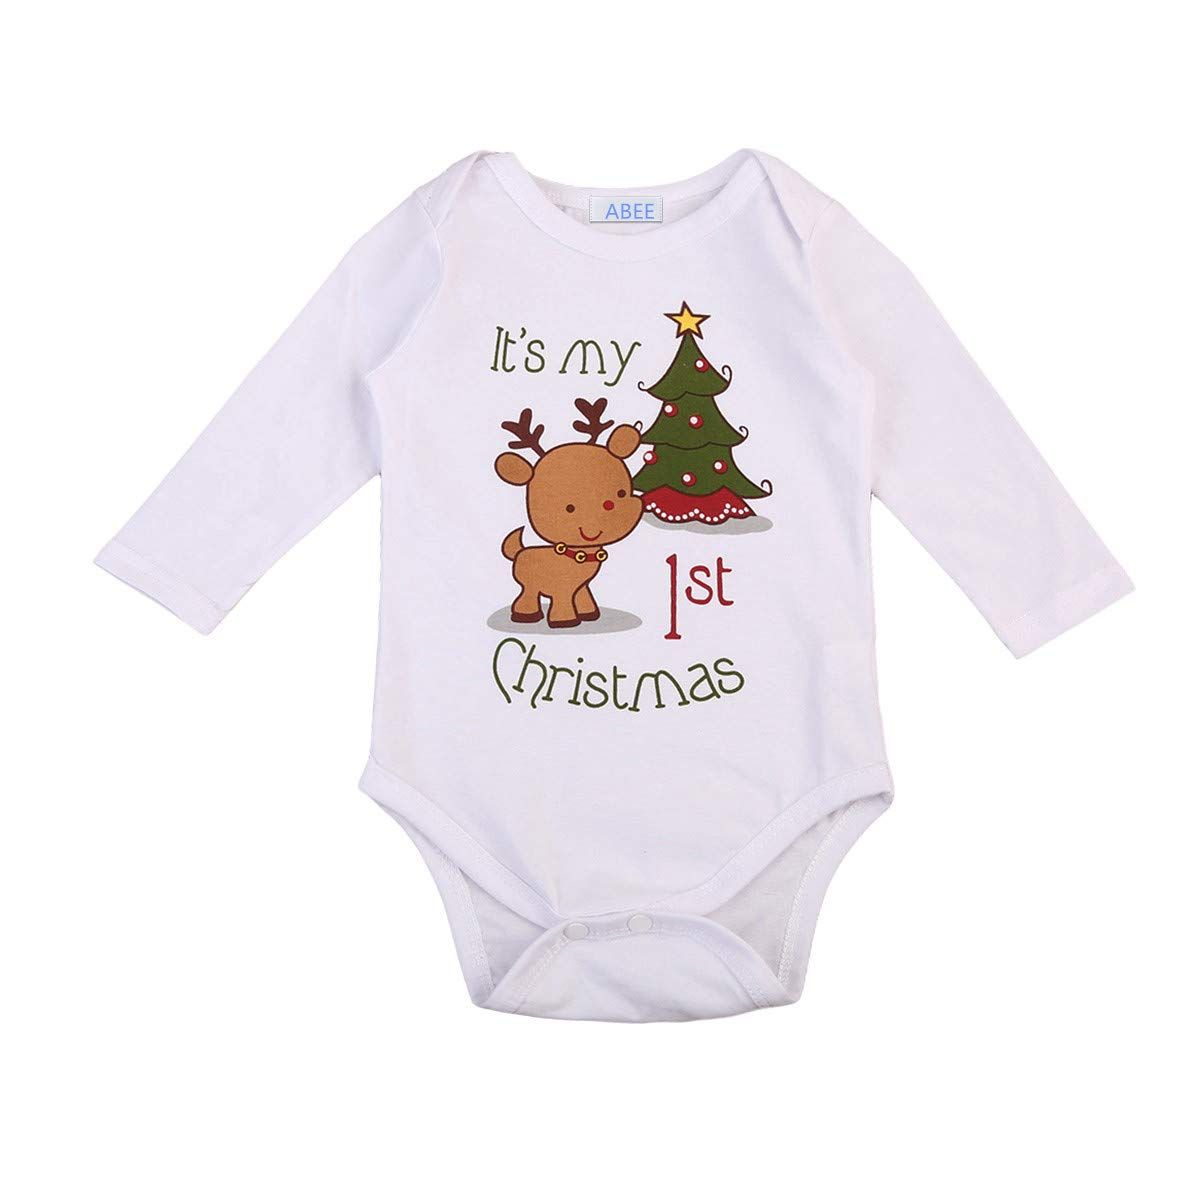 c0a0cbdf804a ABEE It is My 1st Christmas Newborn Baby Girls Boy Long Sleeve Deer  Bodysuit Romper Outfit Clothes ** For additional information, visit photo  web link.